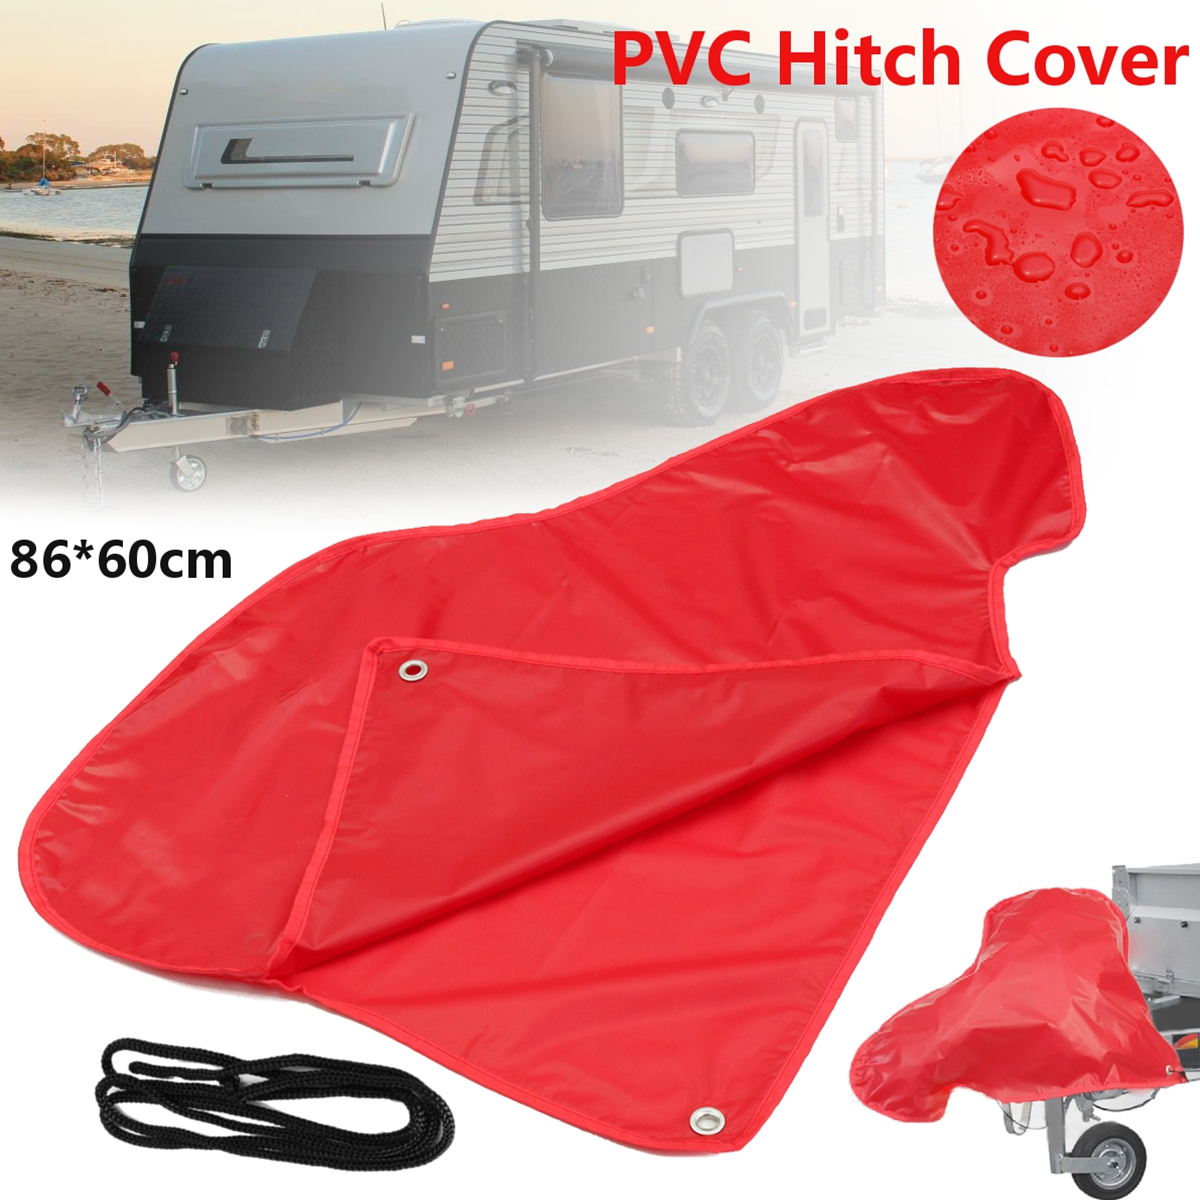 цена на Red PVC Material Trailer Towing Hook Connector Hitch Cover Waterproof For Caravan Tailer Hitch Coupling Lock Cover Dust Protect